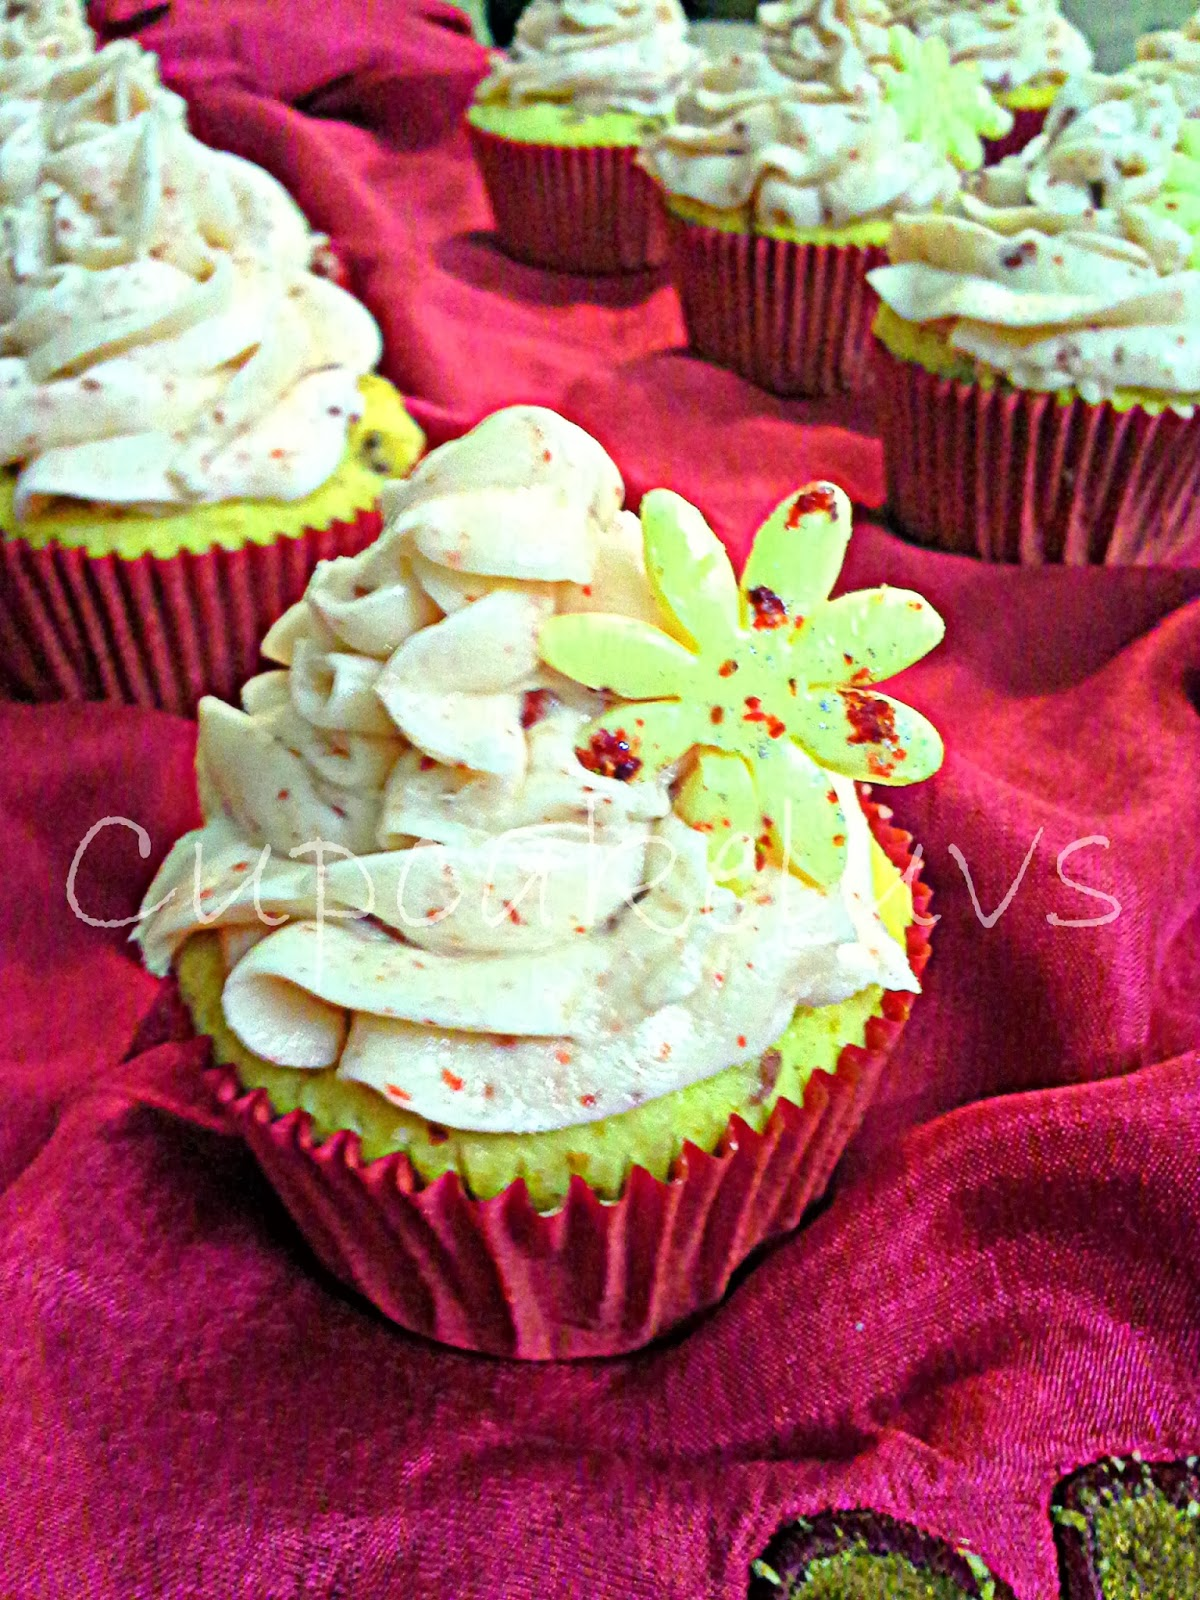 http://cupcakeluvs.blogspot.dk/2014/01/strawberry-white-chocolate.html